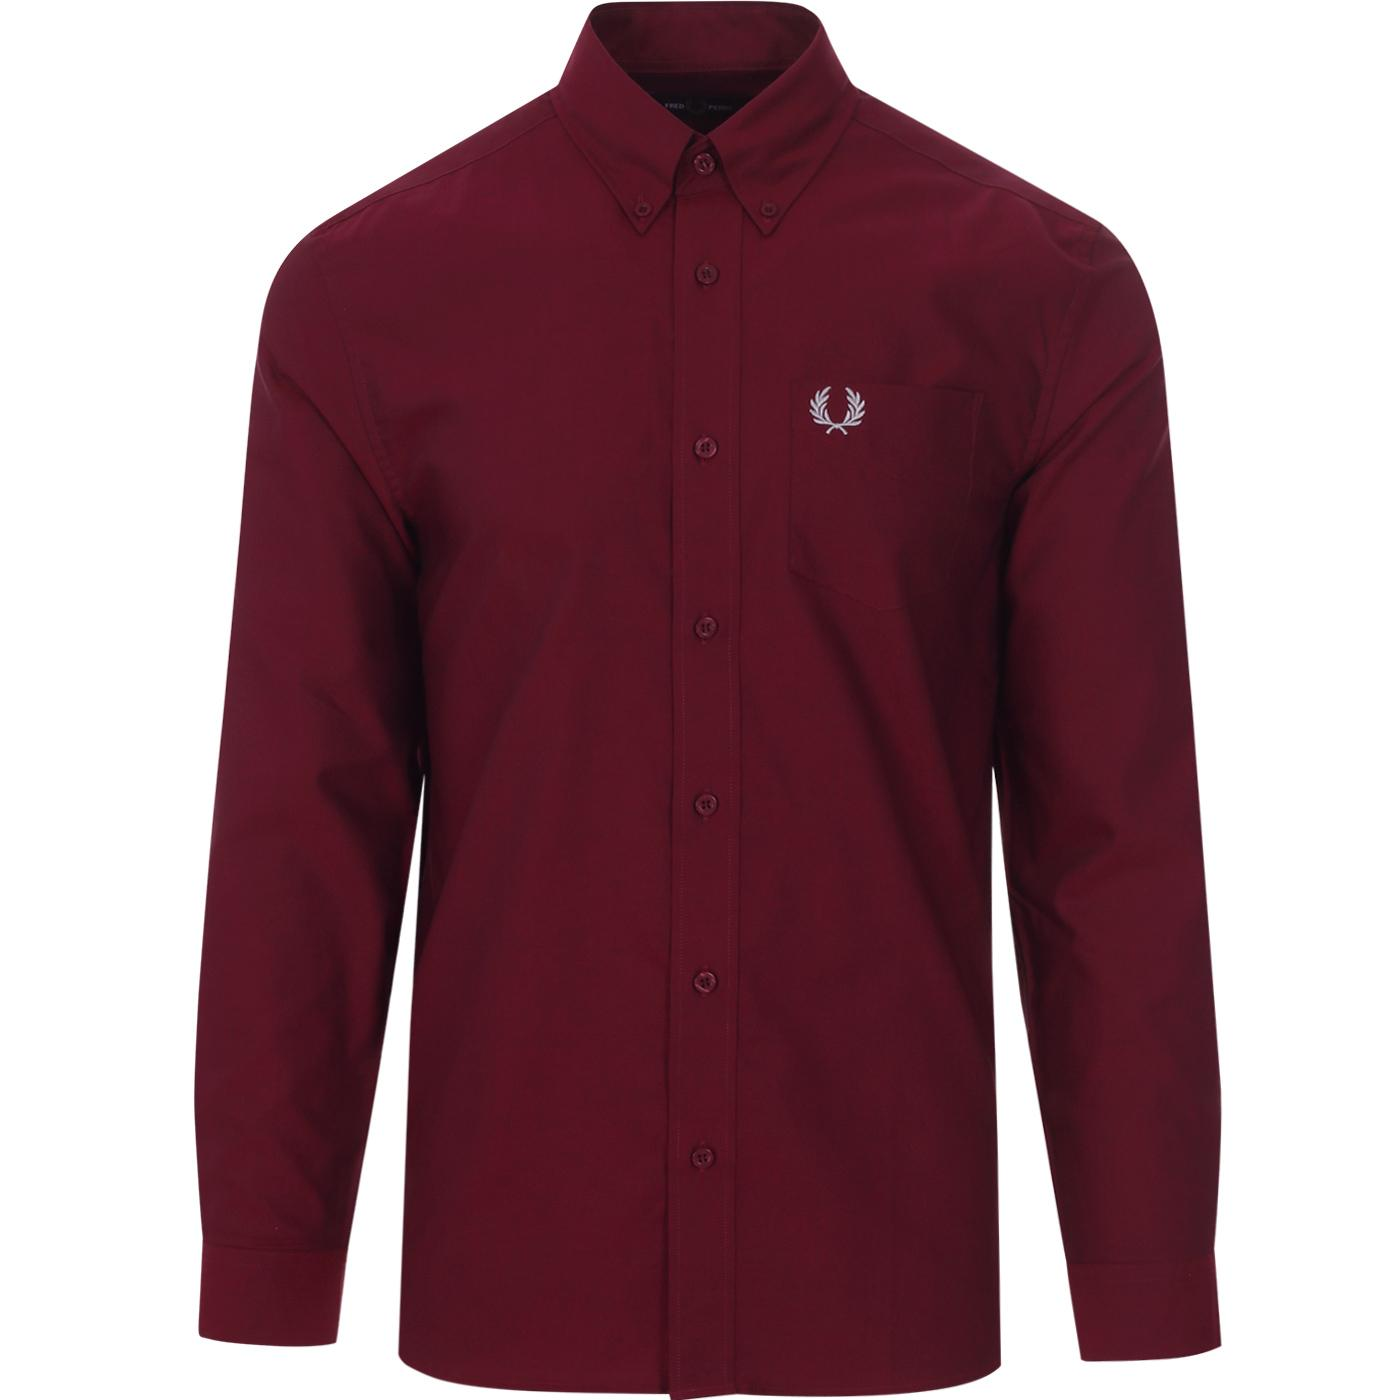 FRED PERRY Retro Mod Button Down Oxford Shirt (P)